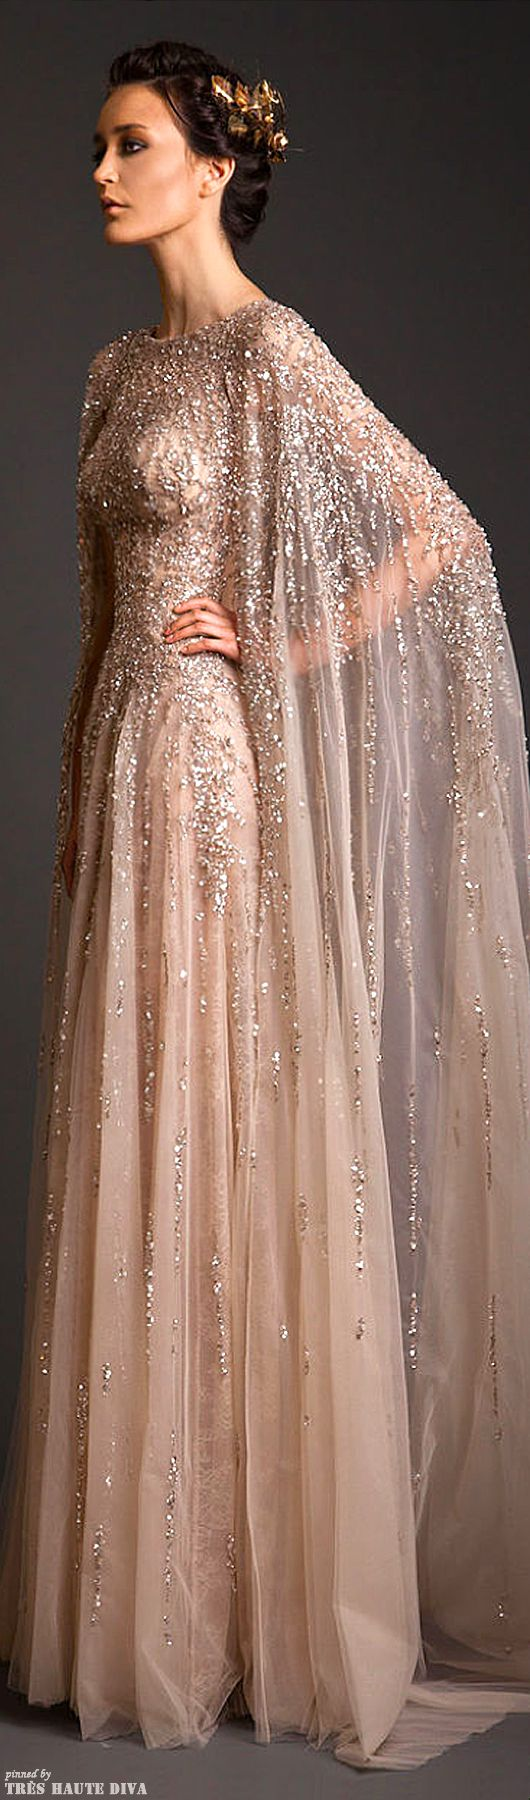 Exquisite, I'm in love Krikor Jabotian Couture S/S 2014. It's like a skating dress, but not for skating :)